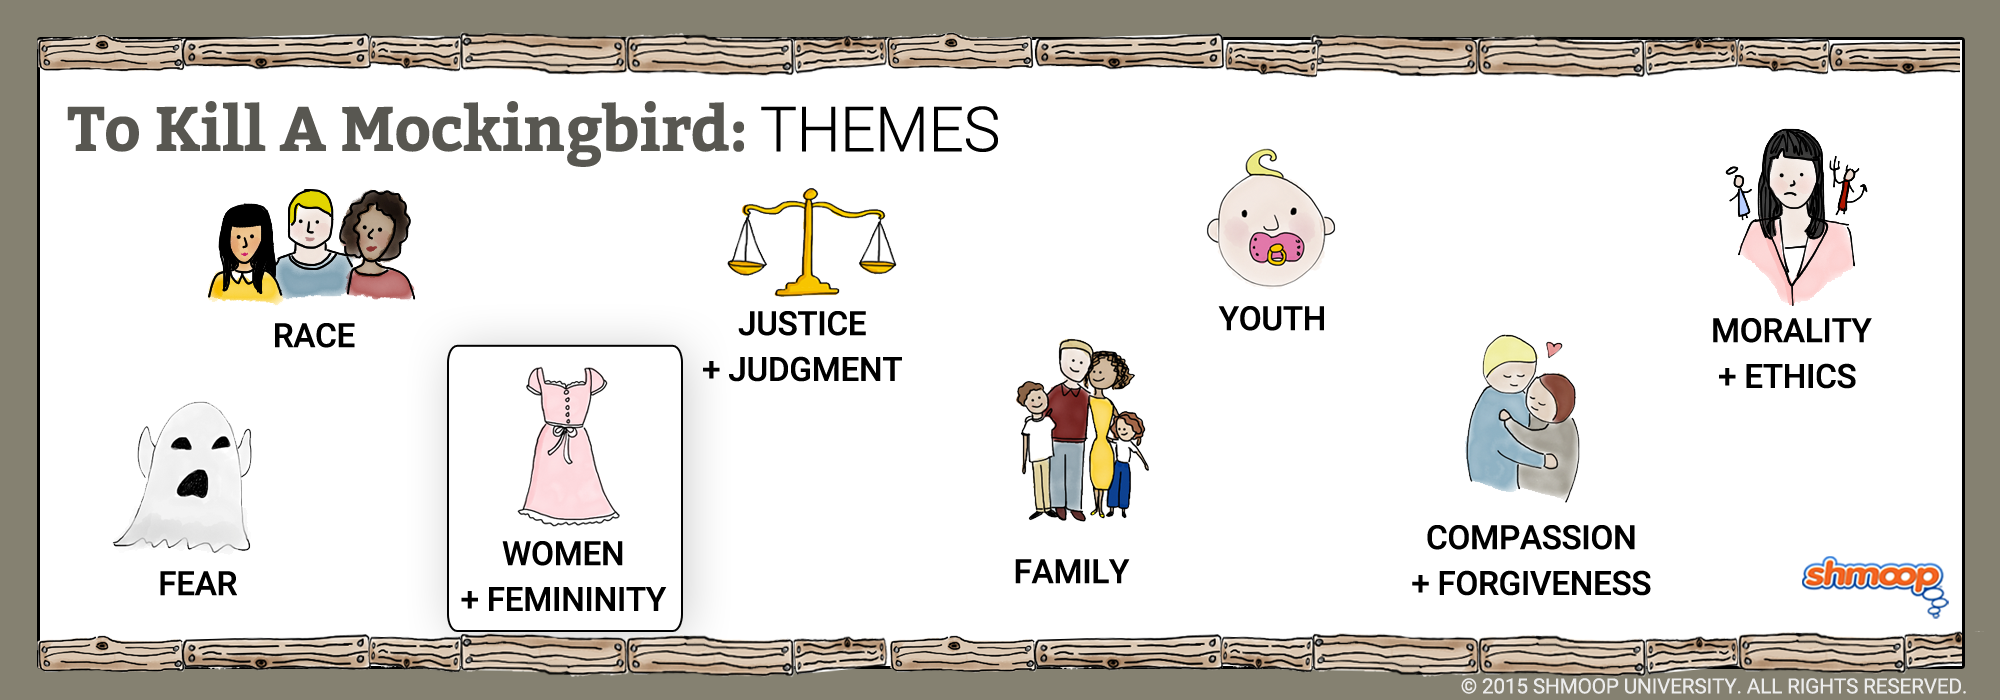 to kill a mockingbird theme of women and femininity click the themes infographic to